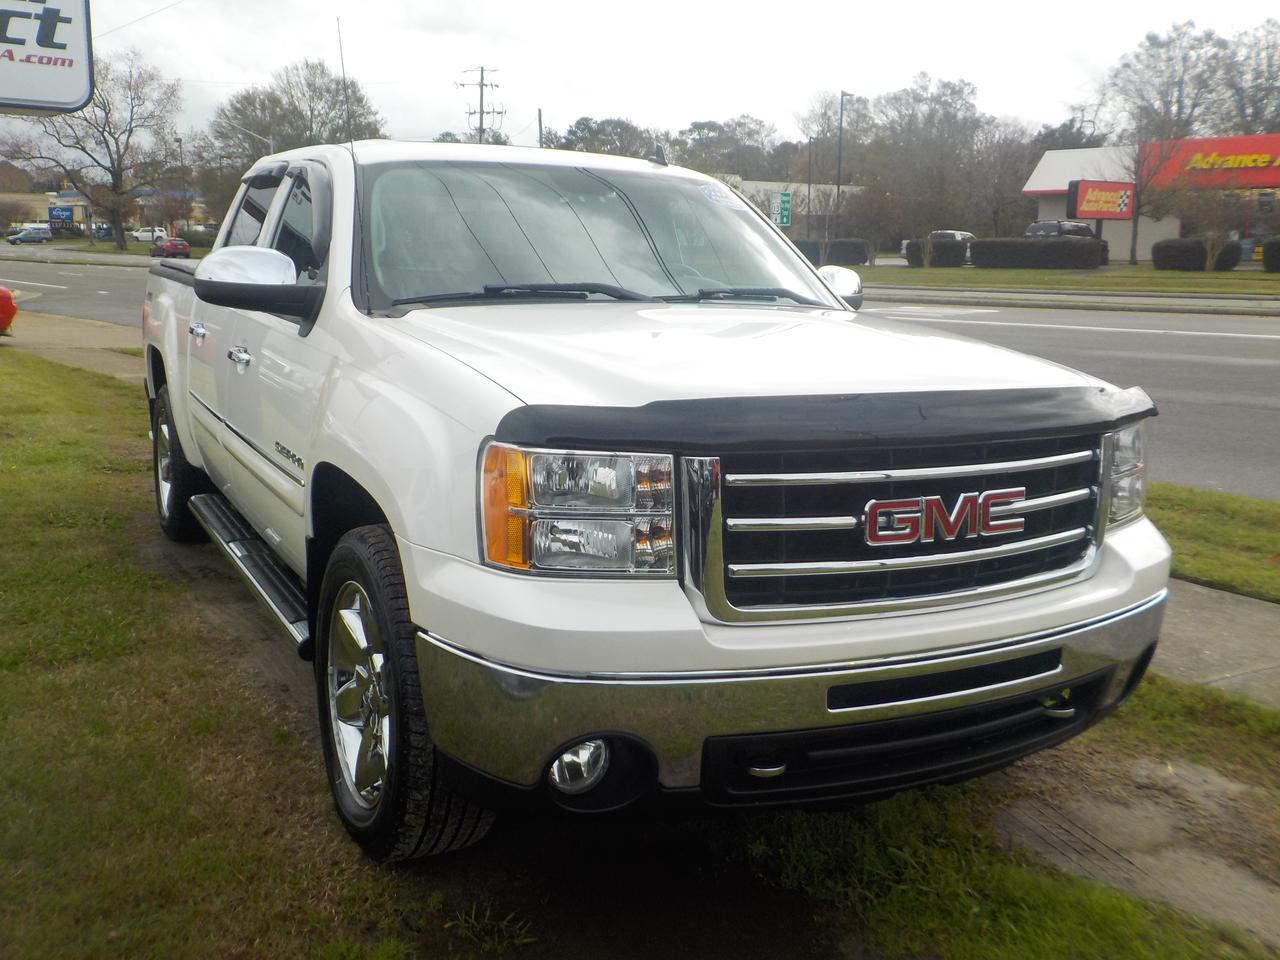 2012 GMC SIERRA 1500 CREW CAB SLT 4X4, RIGHT COLOR COMBO, LEATHER, SUNROOF, ONLY 56K ORIGINAL MILES, ABSOLUTELY NEW! Virginia Beach VA